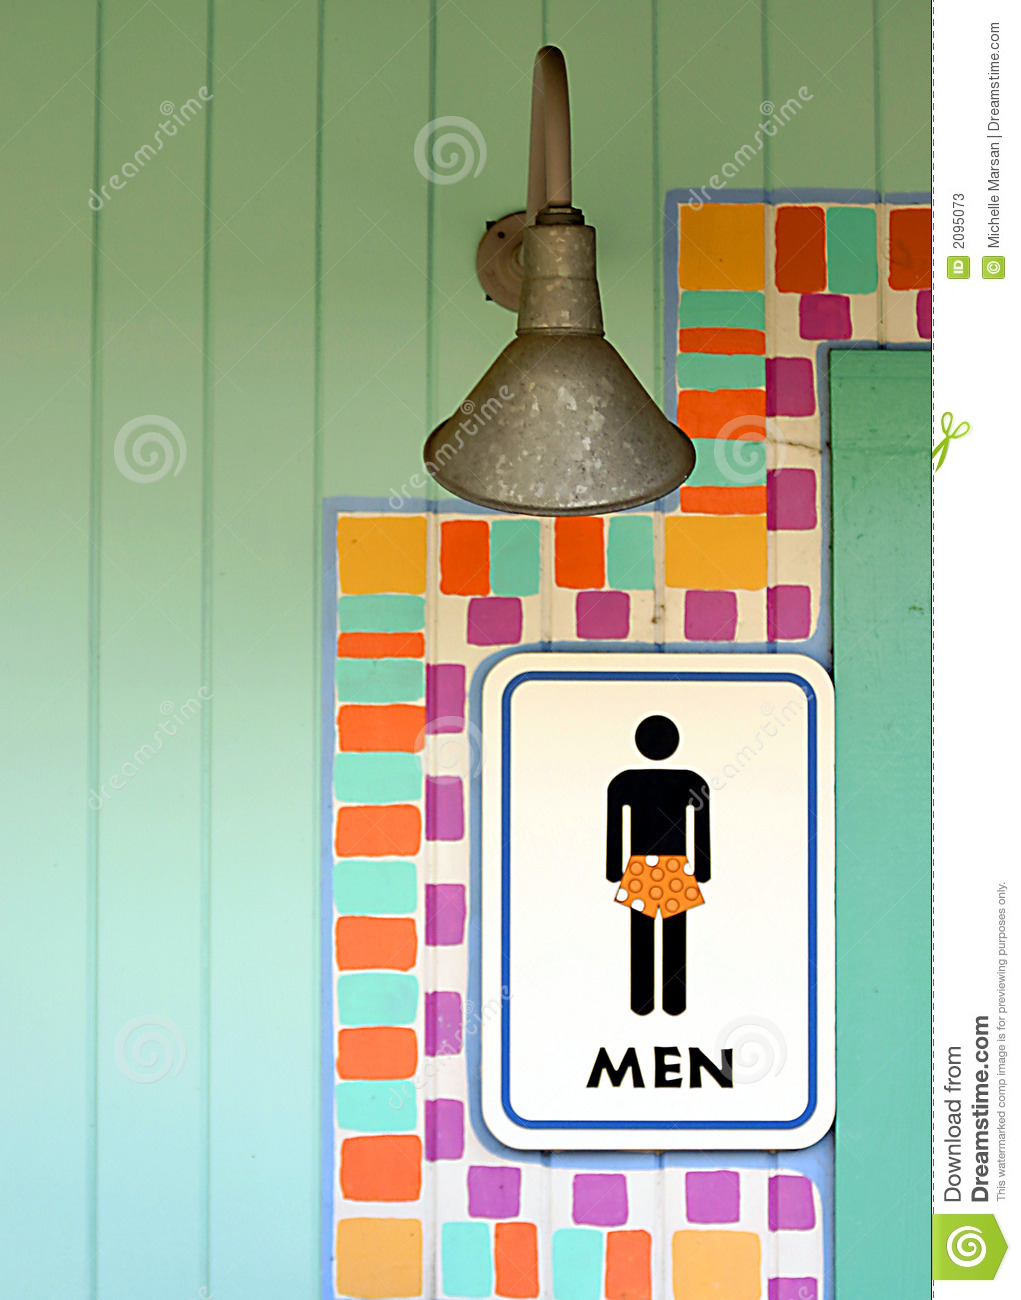 Tropical Mens Room Sign Stock Photos - Image: 2095073